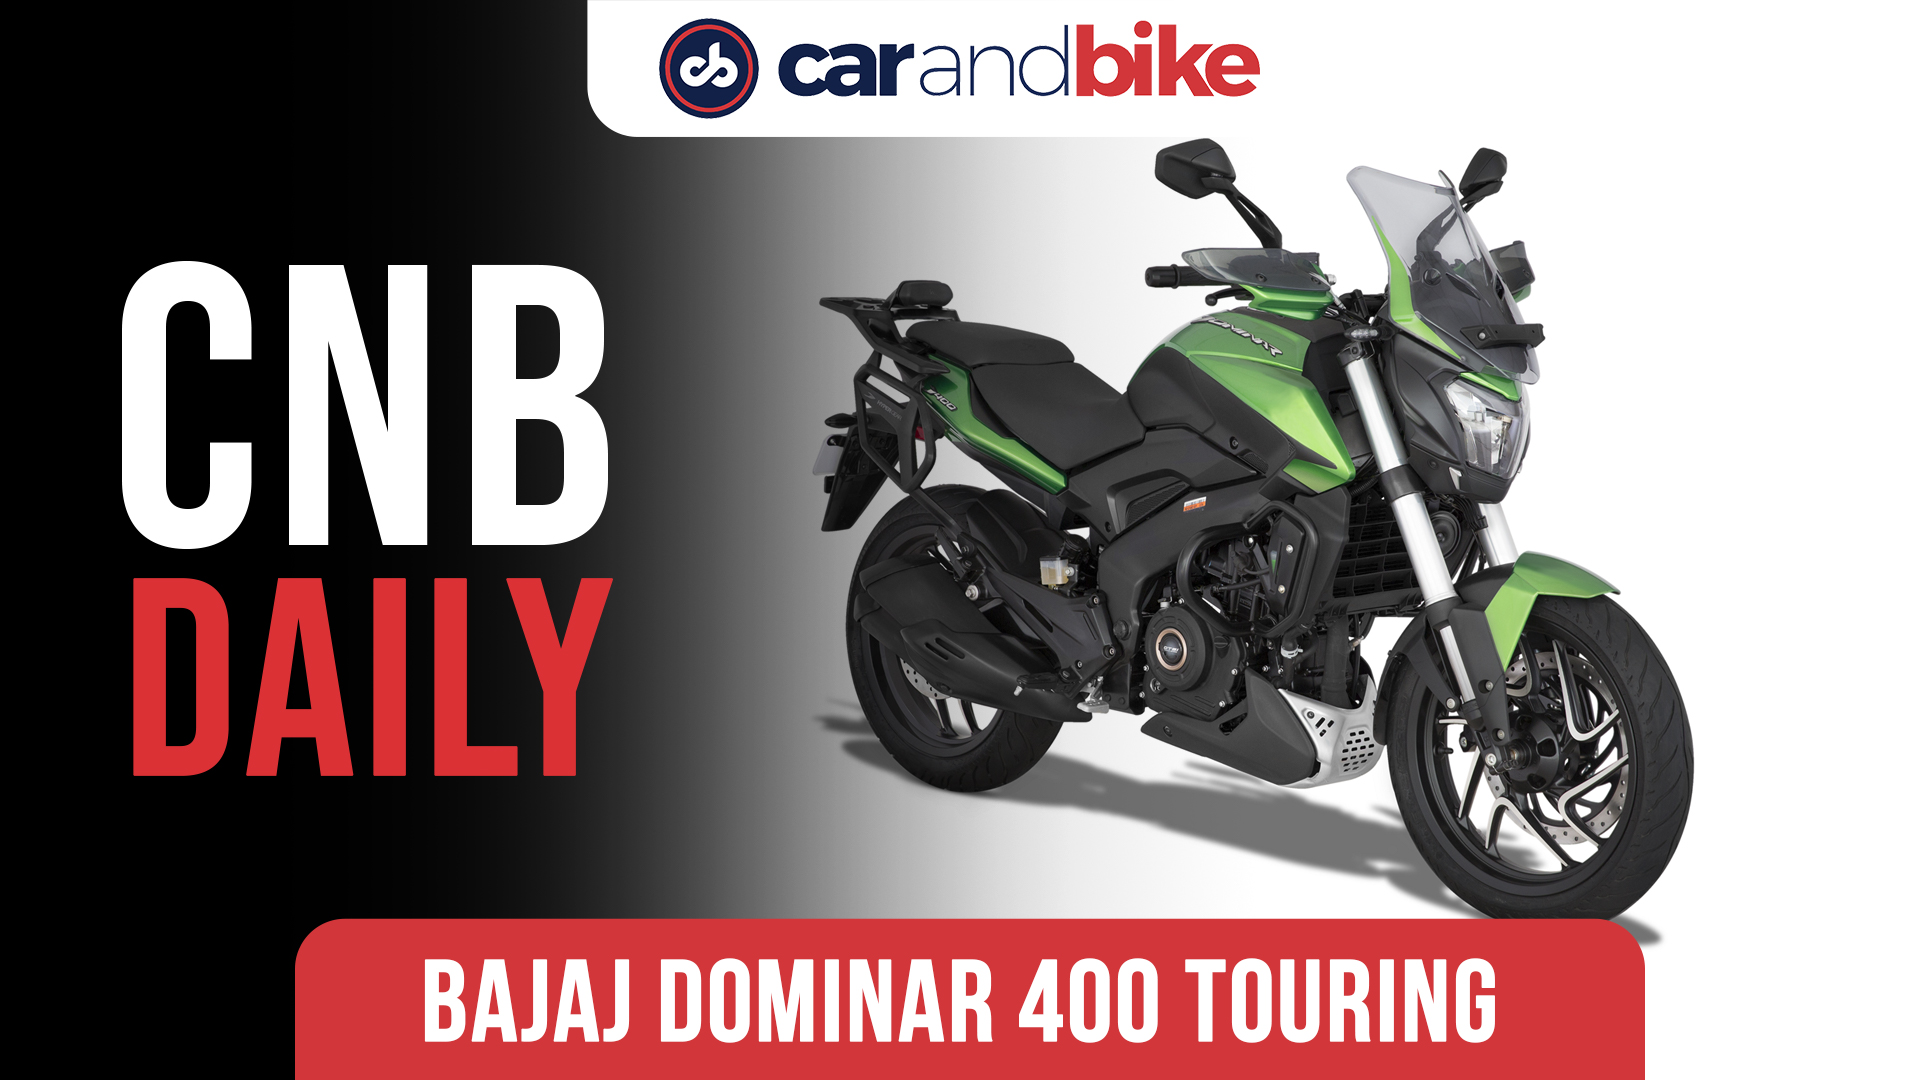 Bajaj Dominar 400 Launched With Touring Accessories